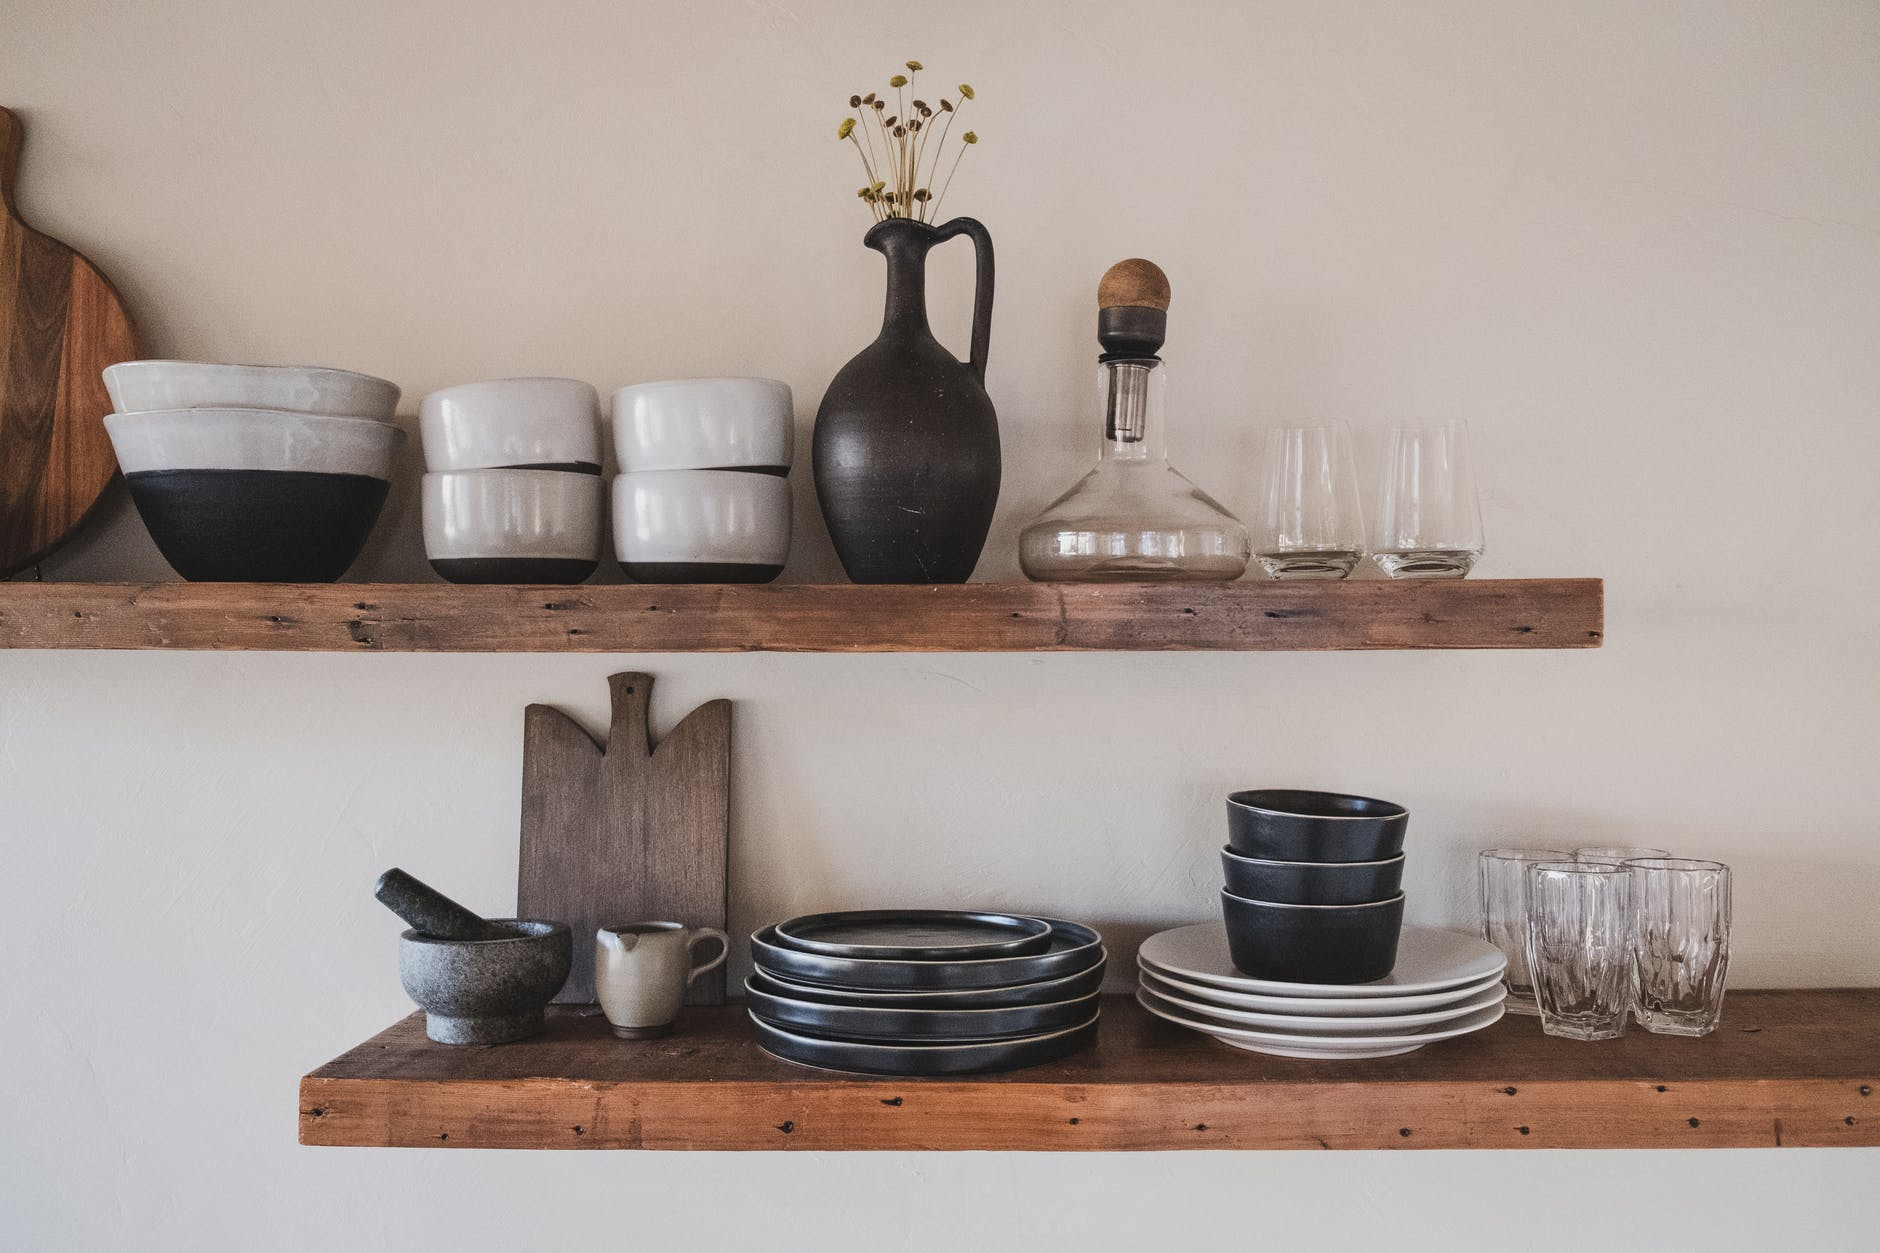 The Essential Things You Need in A Kitchen